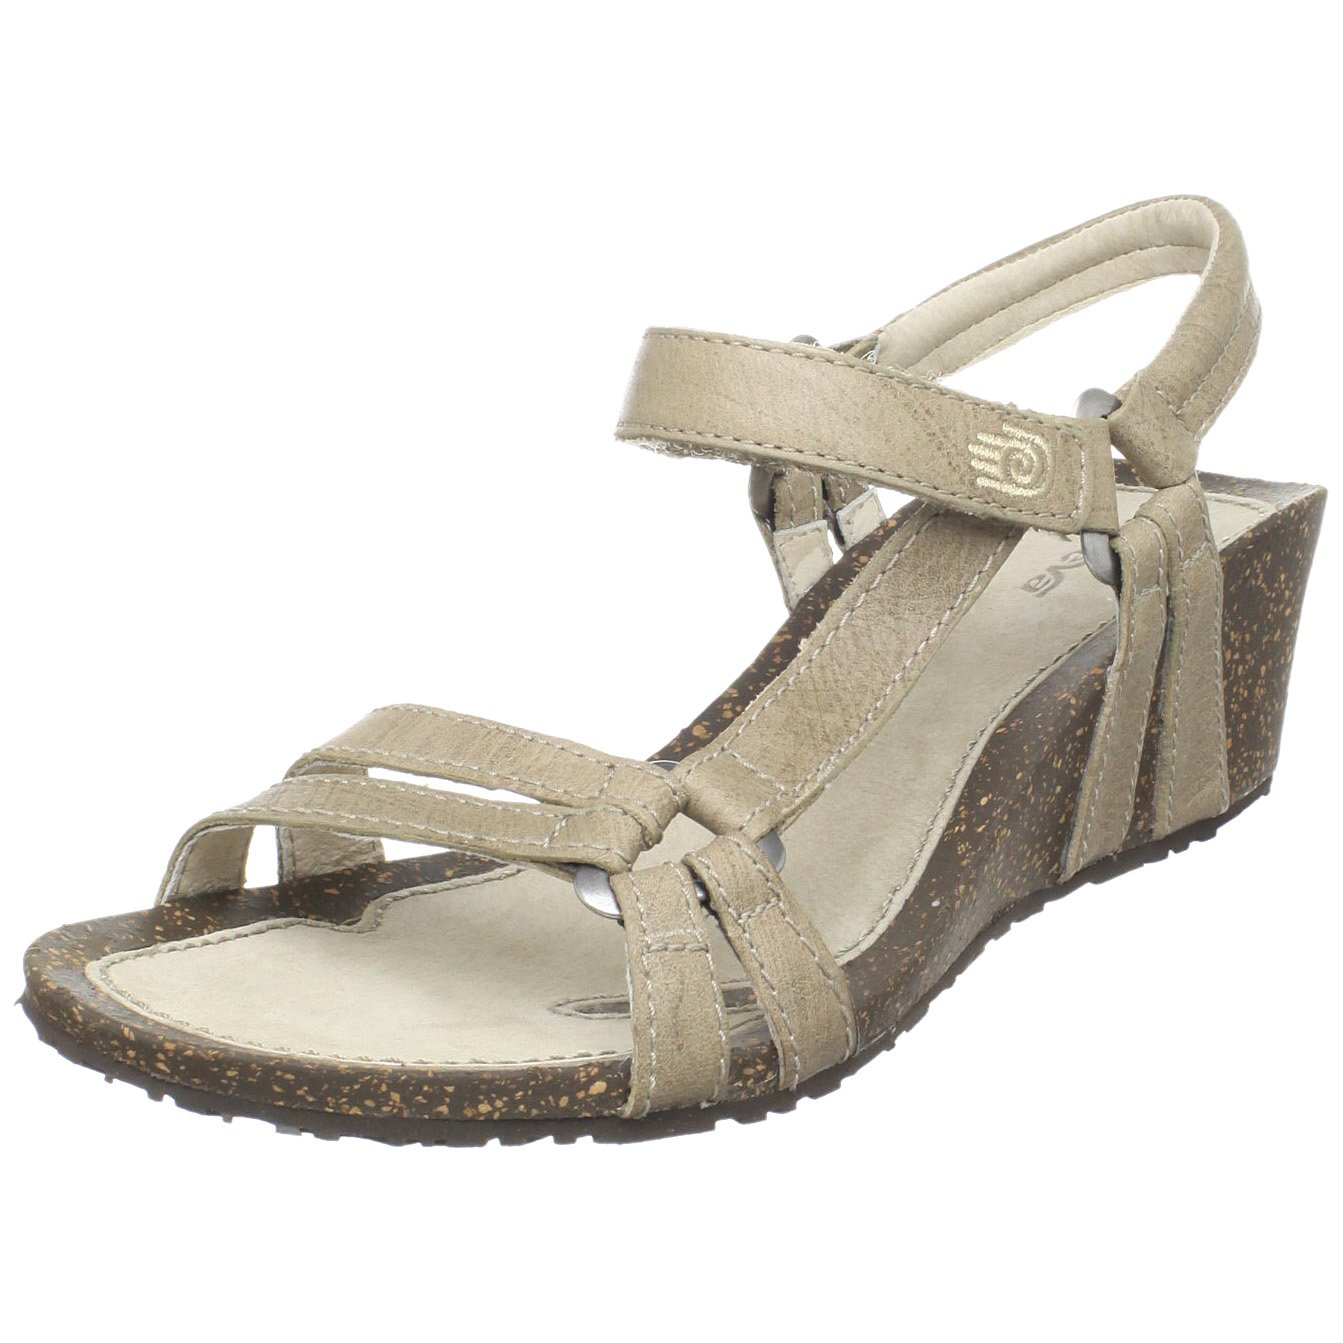 Teva Women's Ventura Cork 2 Wedge Leather Sandal B003VPAB3M Parent